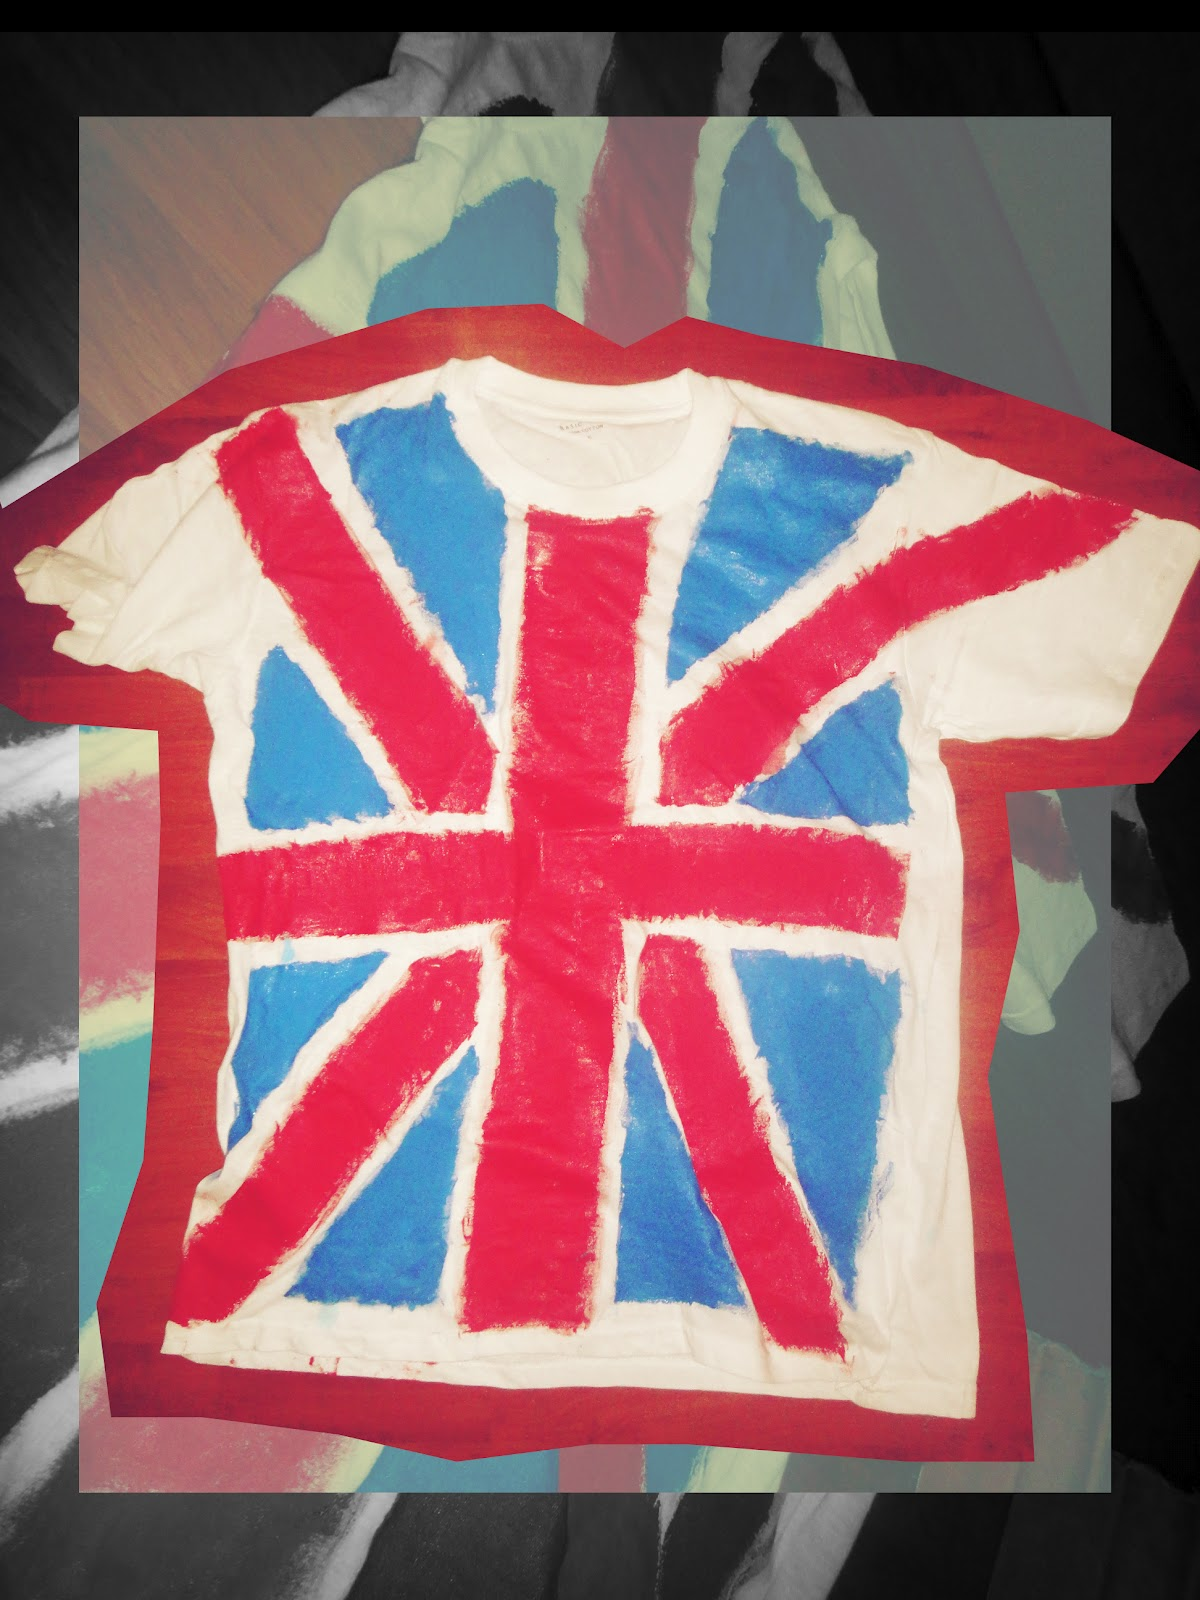 Design your own t shirt cheap uk -  More Creative Than Me And Make Your Own Variation It S Cheap And Easy And Can Level With The Branded Clothes With The Same Design If You Put Effort